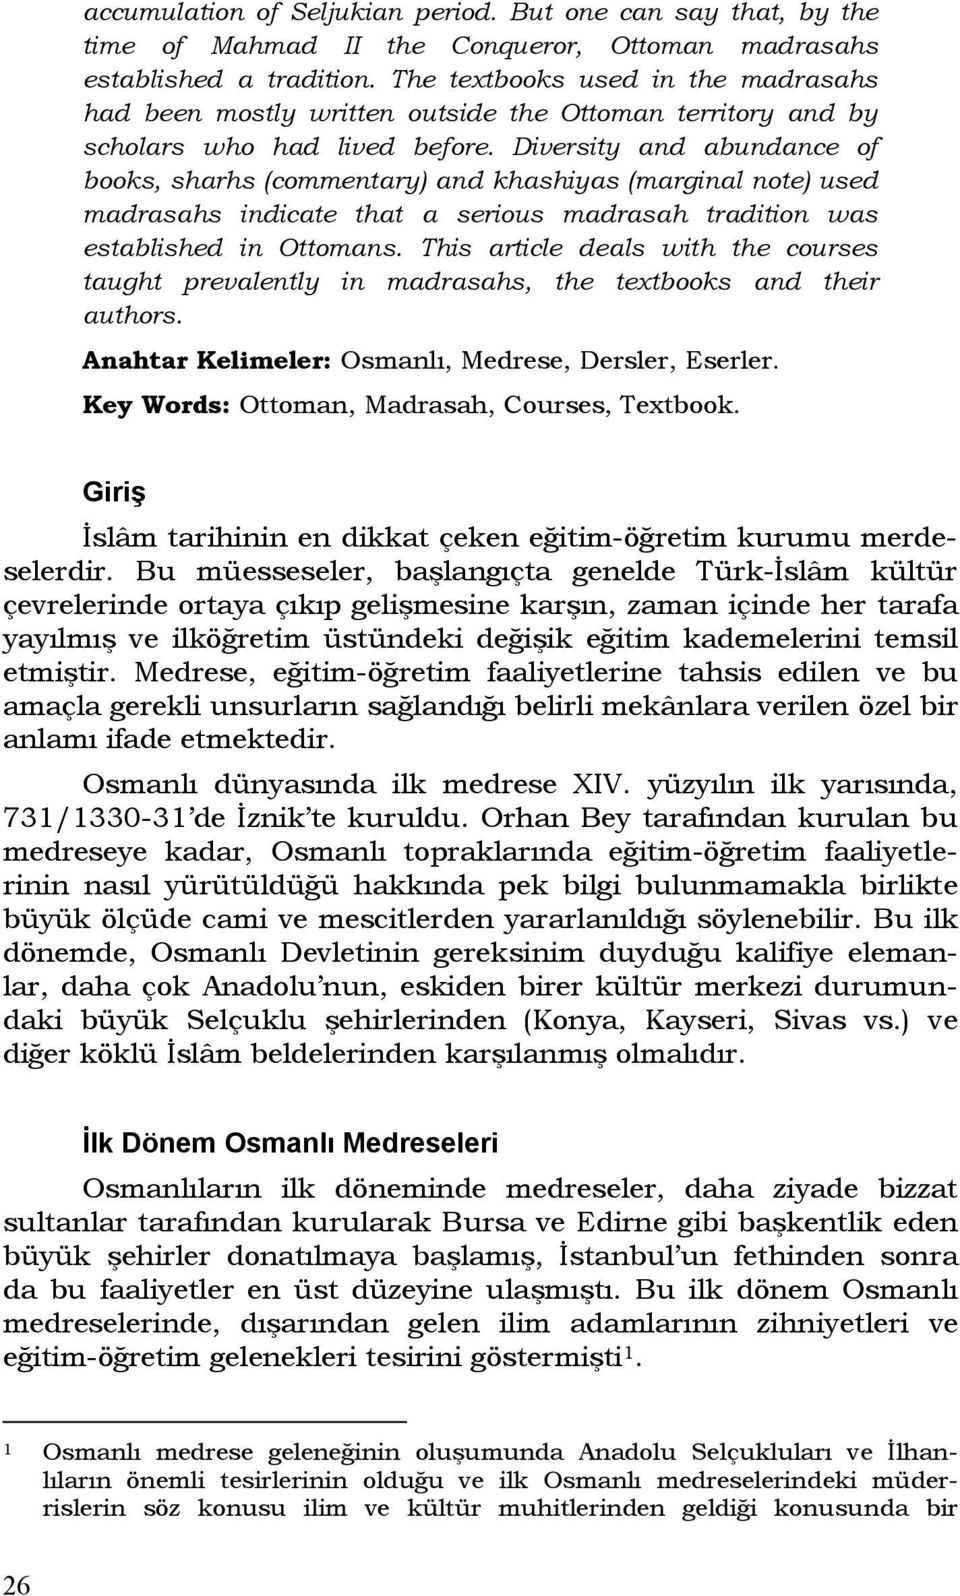 Diversity and abundance of books, sharhs (commentary) and khashiyas (marginal note) used madrasahs indicate that a serious madrasah tradition was established in Ottomans.